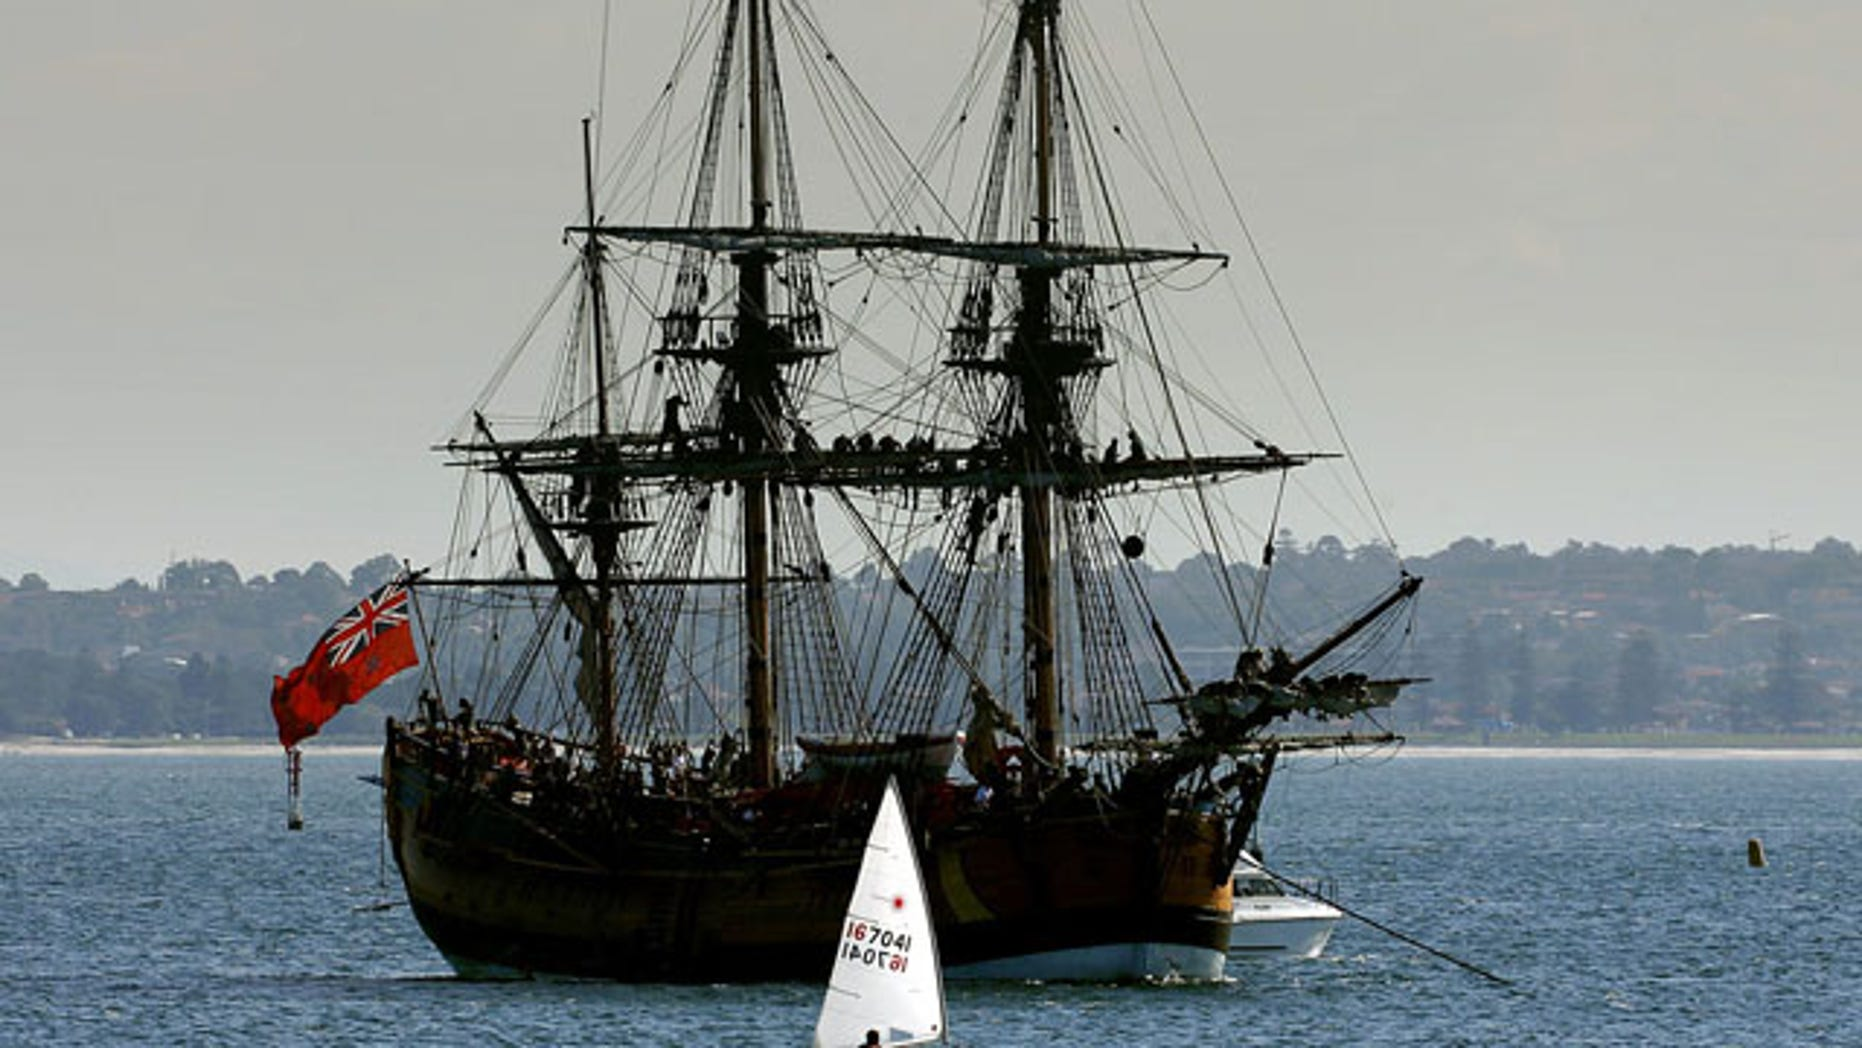 Crew members sit atop the masts of a replica of the famous 18th century ship The Endeavour in Botany Bay.